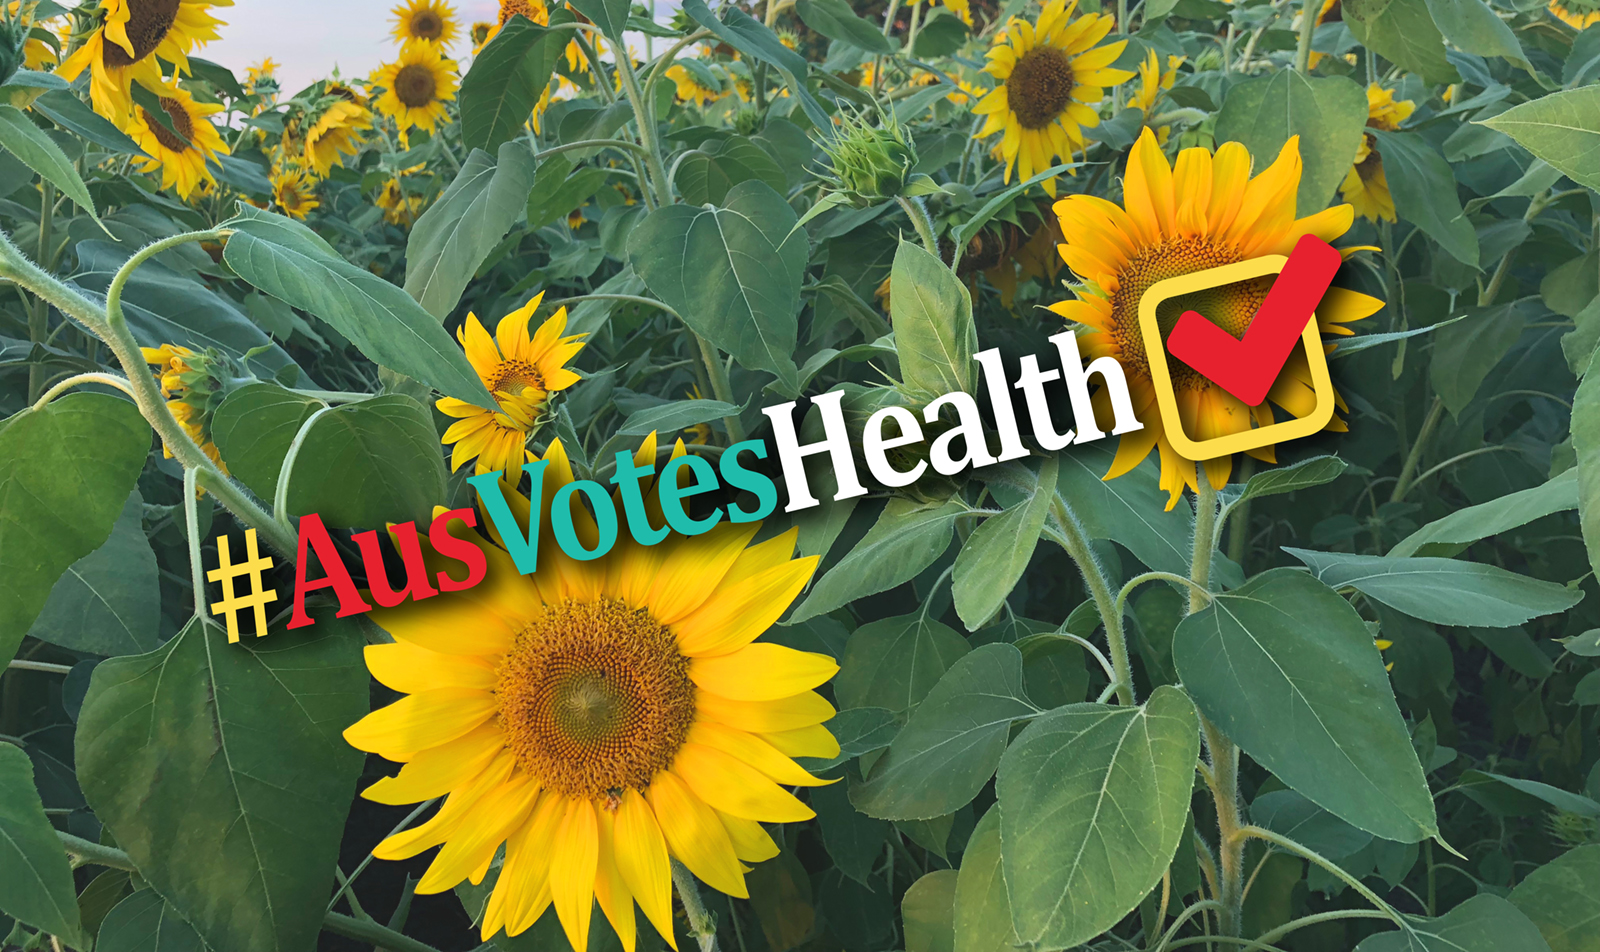 Announcing program for #AusVotesHealth Twitter festival: tune in on 8 May and beyond